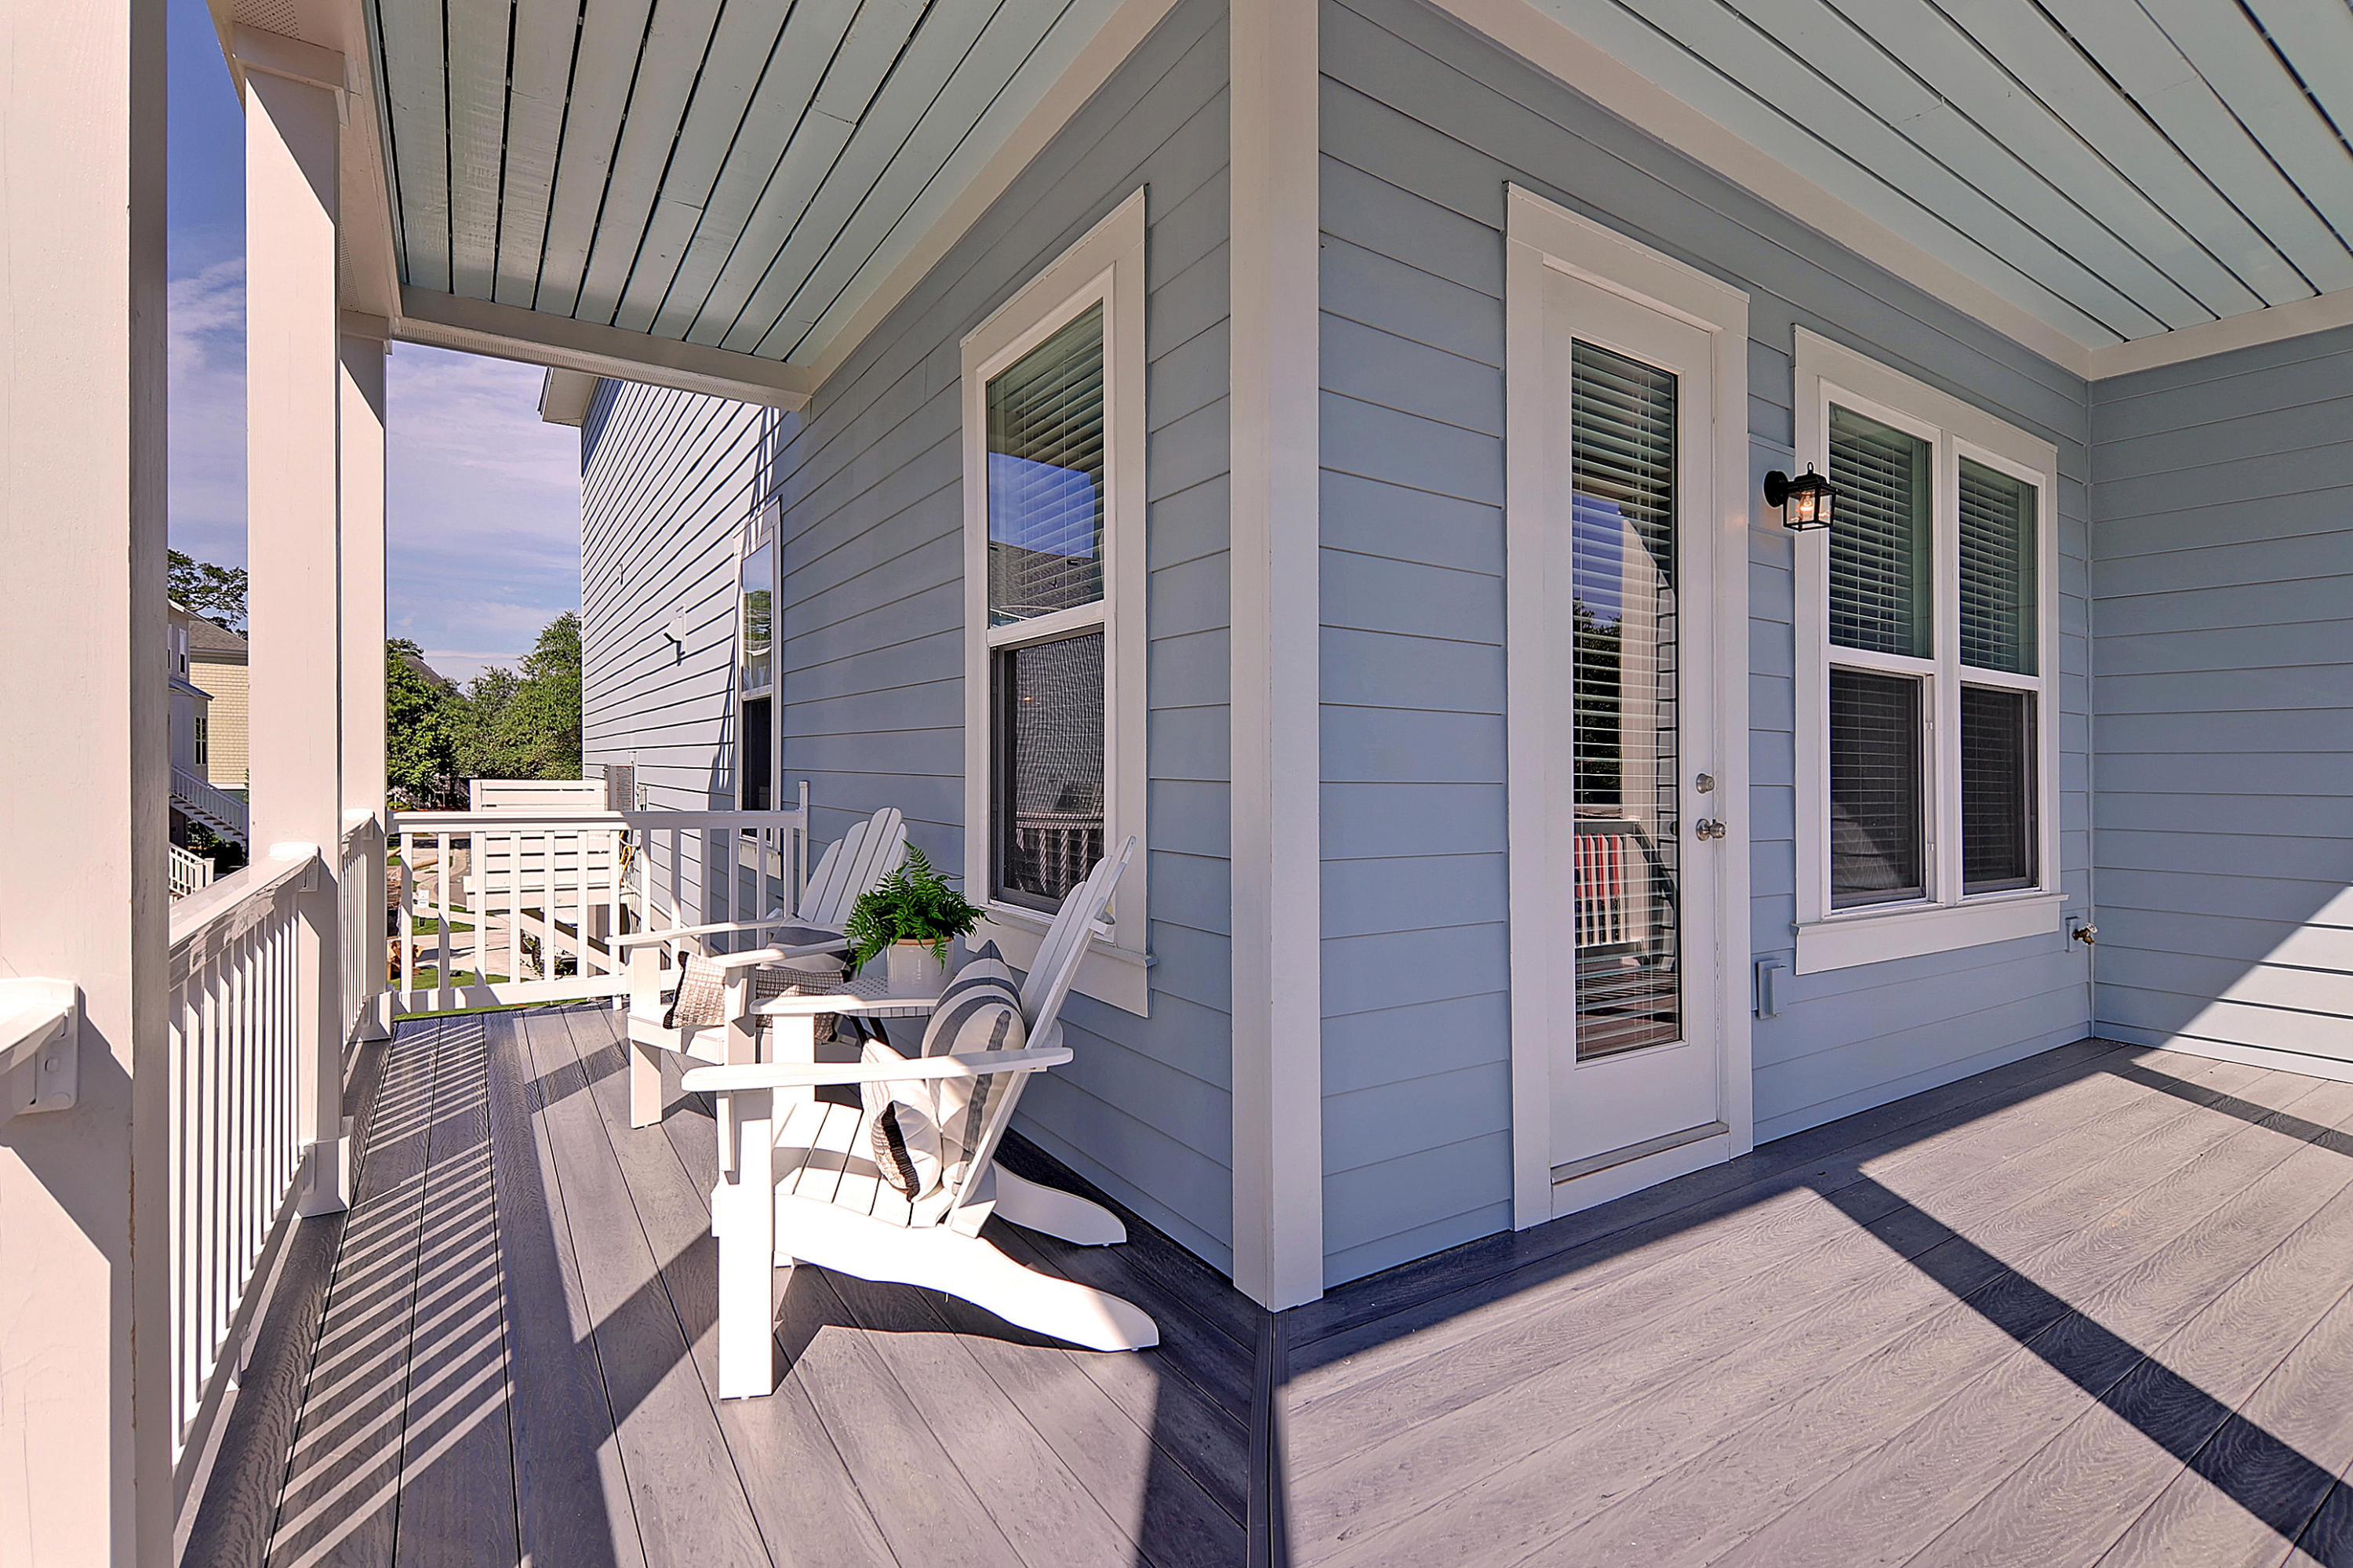 Sable On The Marsh Homes For Sale - 124 Howard Mary, Charleston, SC - 13